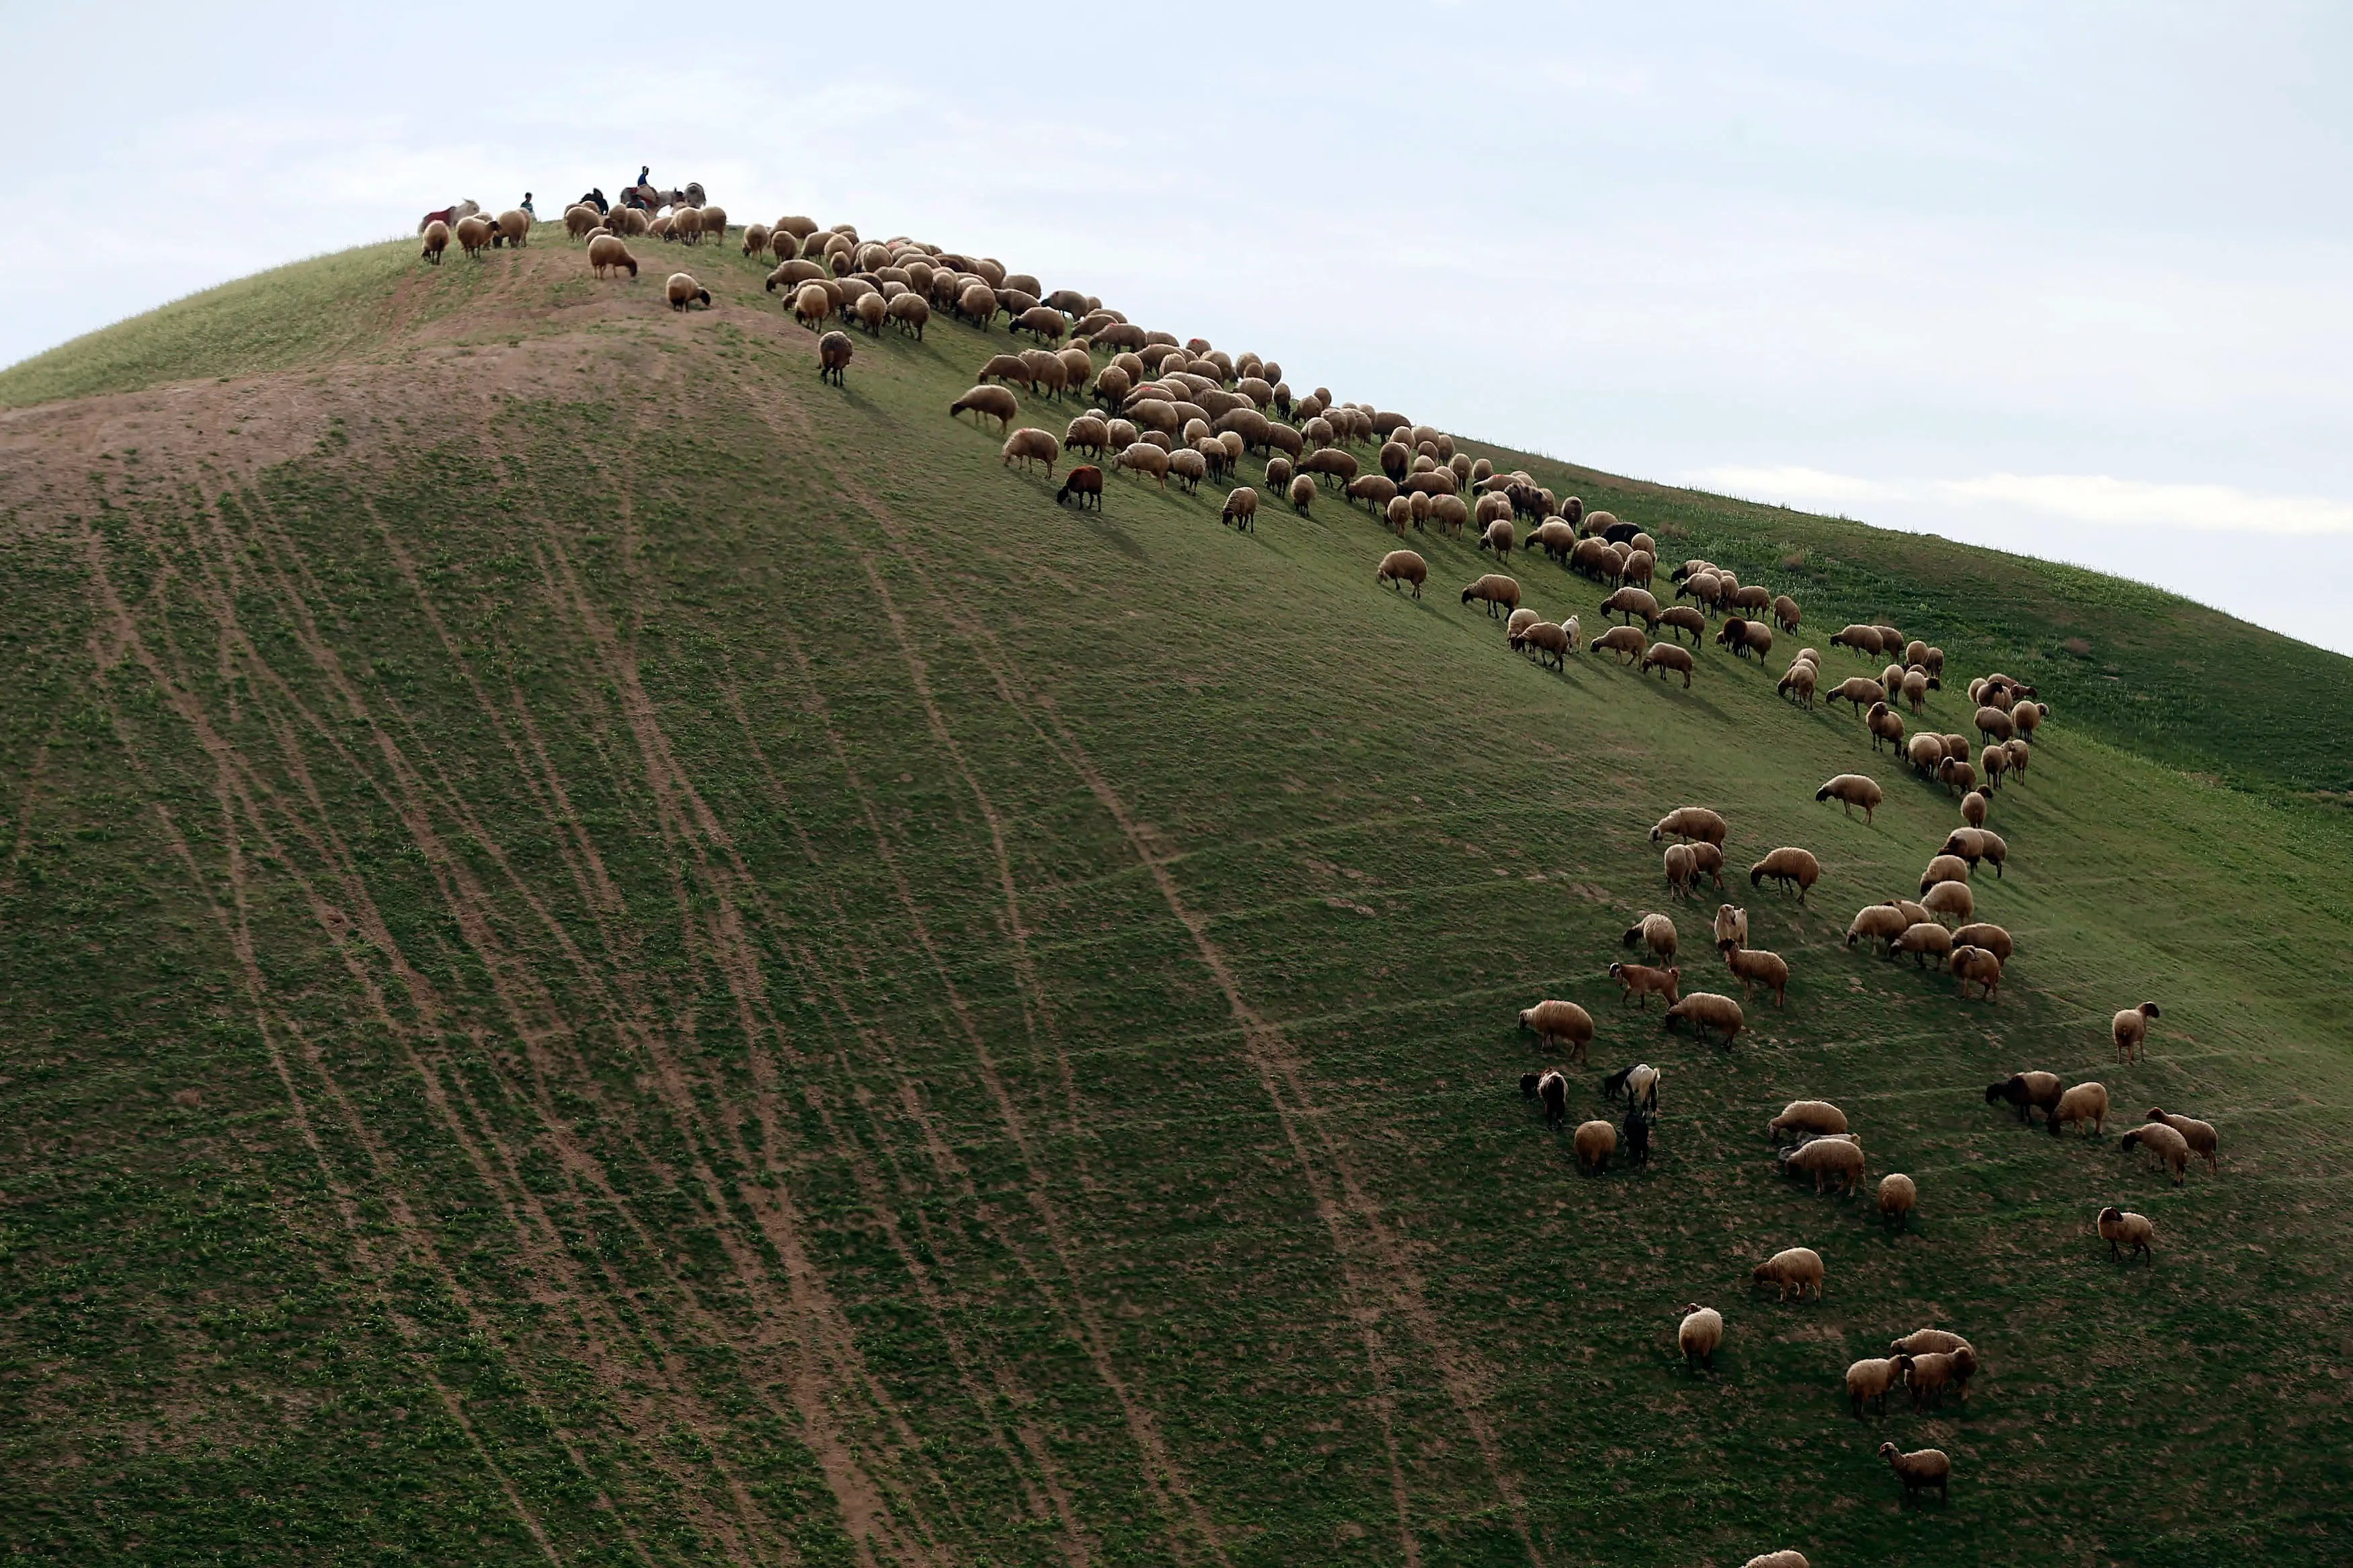 Palestinians herd sheep in Israeli's Judean desert.